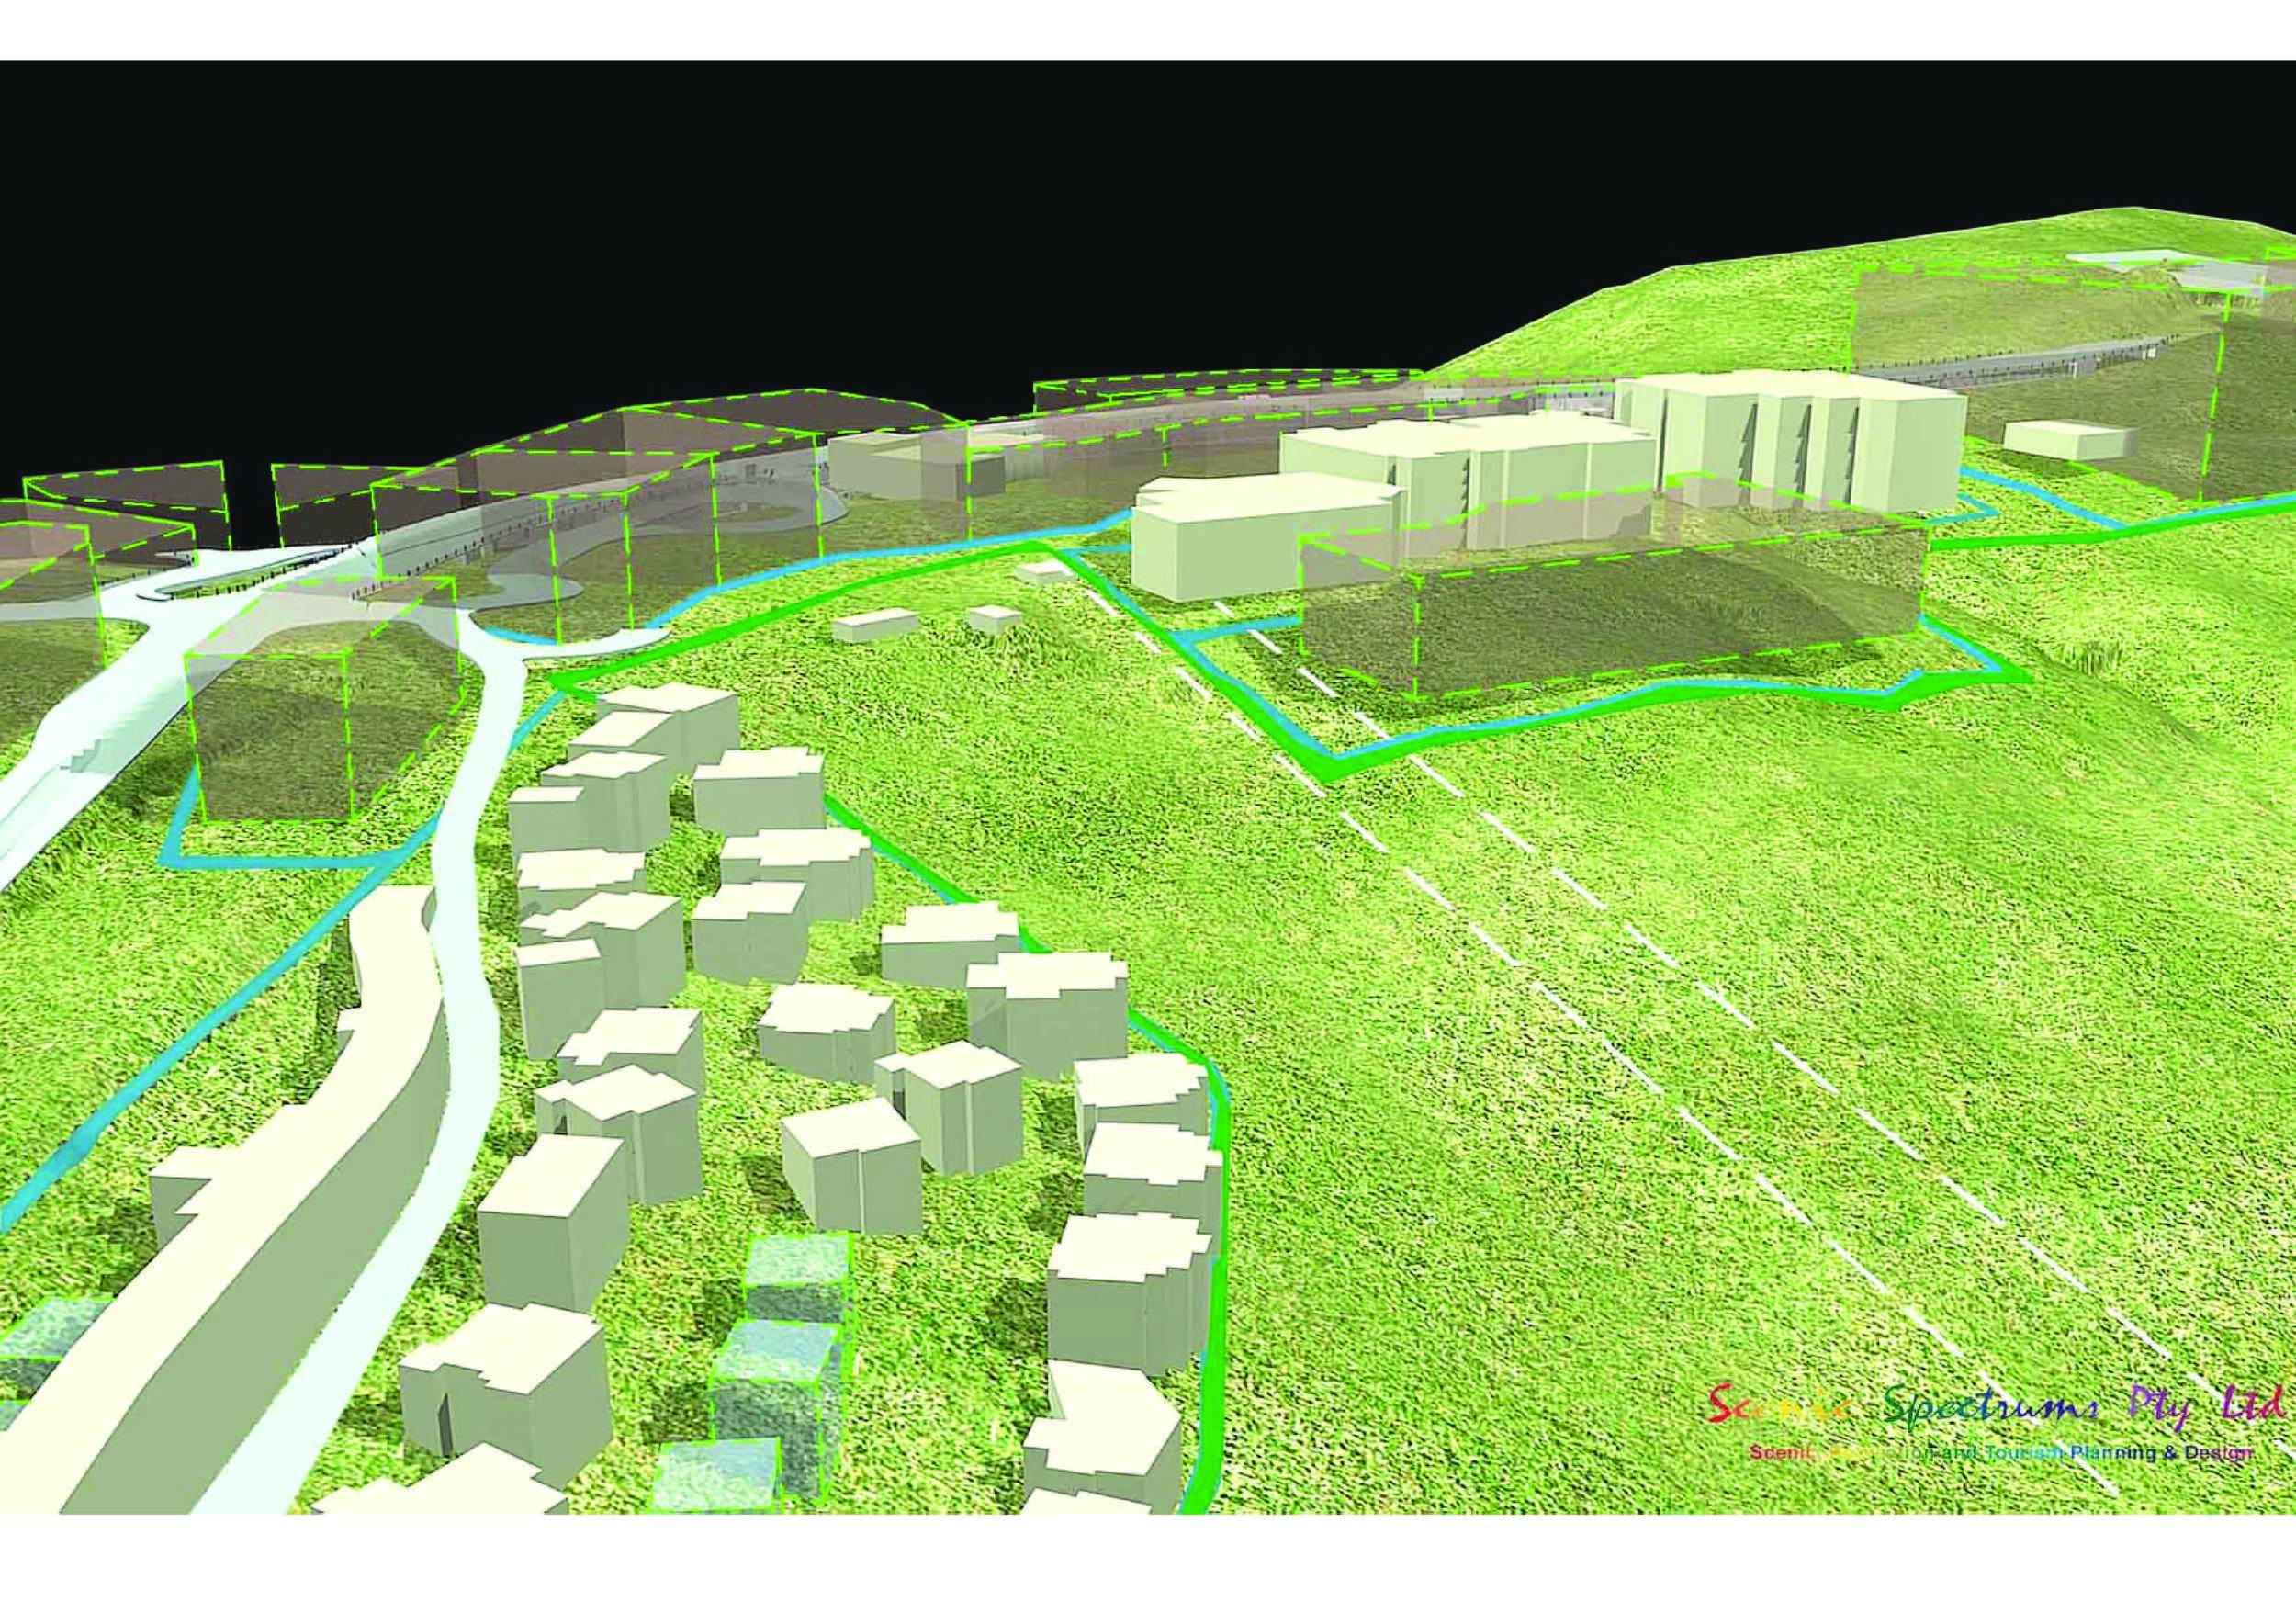 Hotham Village Redevelopment Simulation - Hotham Alpine Resort, Victoria